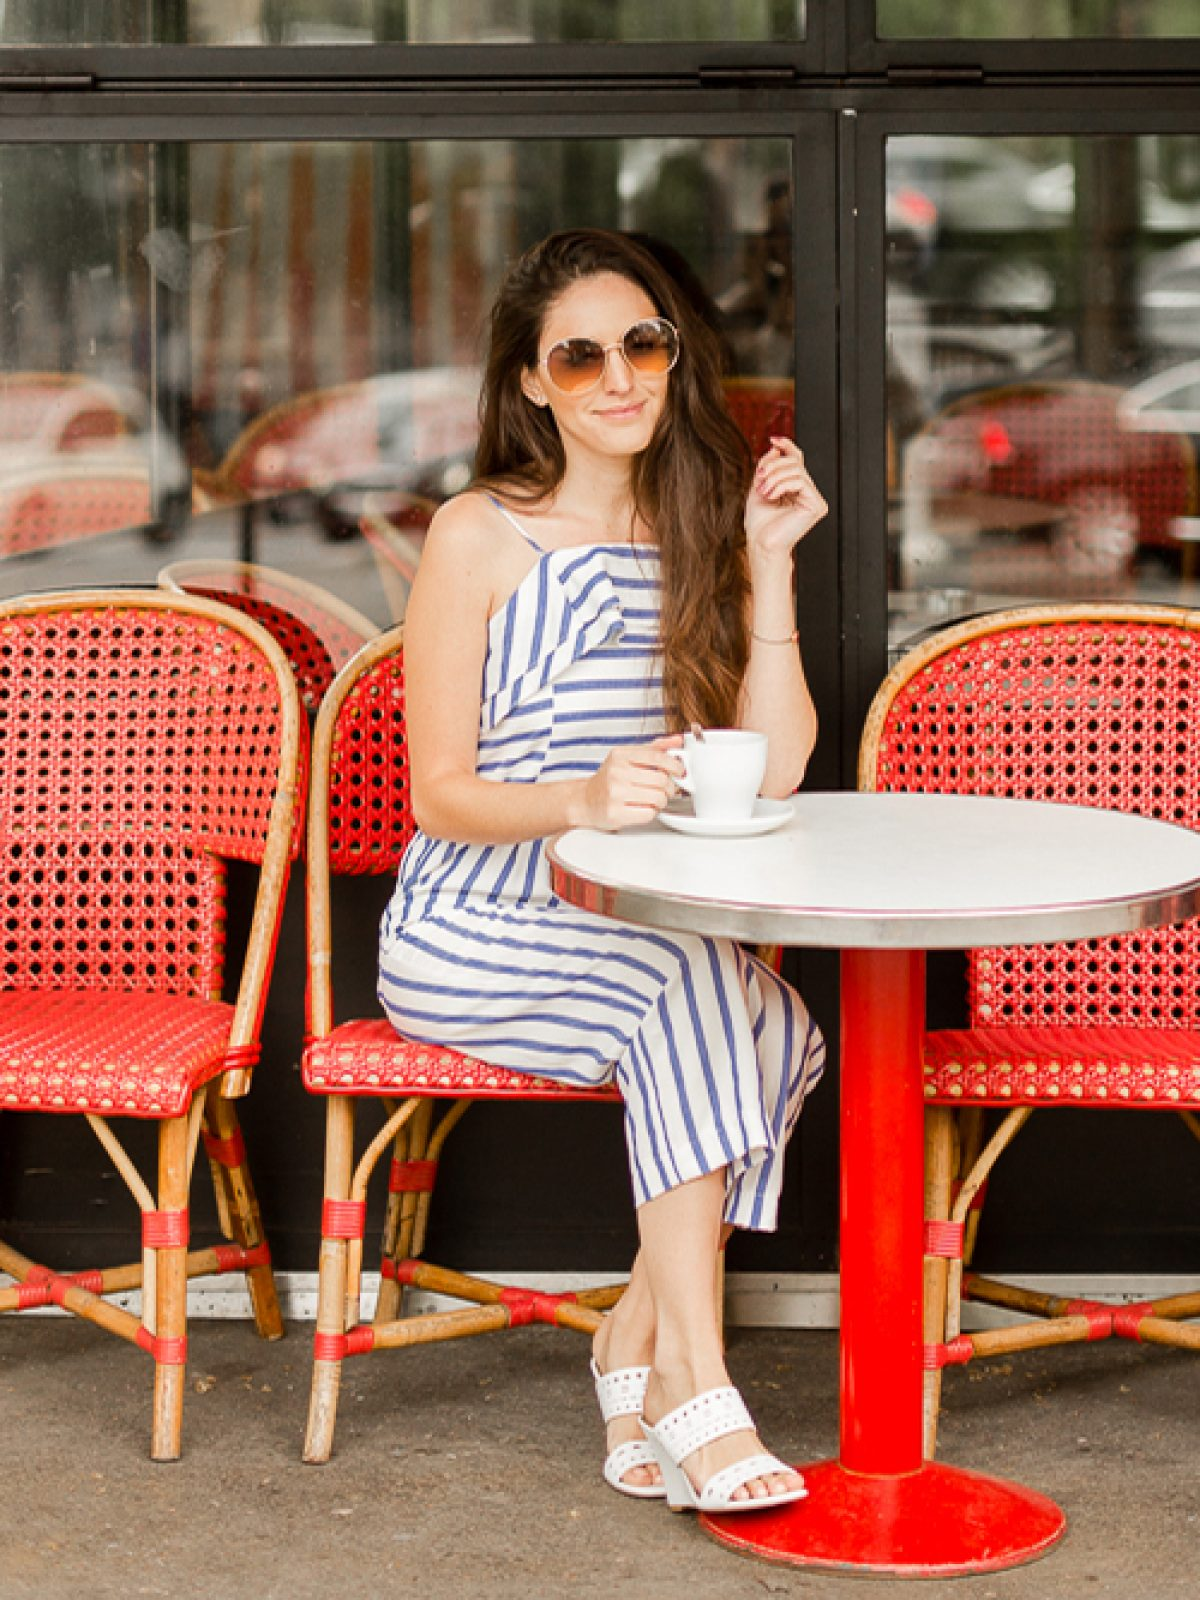 How to style a jumpsuit, cafes in paris, what to do in paris, how to wear a jumpsuit, what to wear in paris, what to wear in europe, summer outfit ideas, spring outfit ideas, spring style, summer style, round gold sunglasses